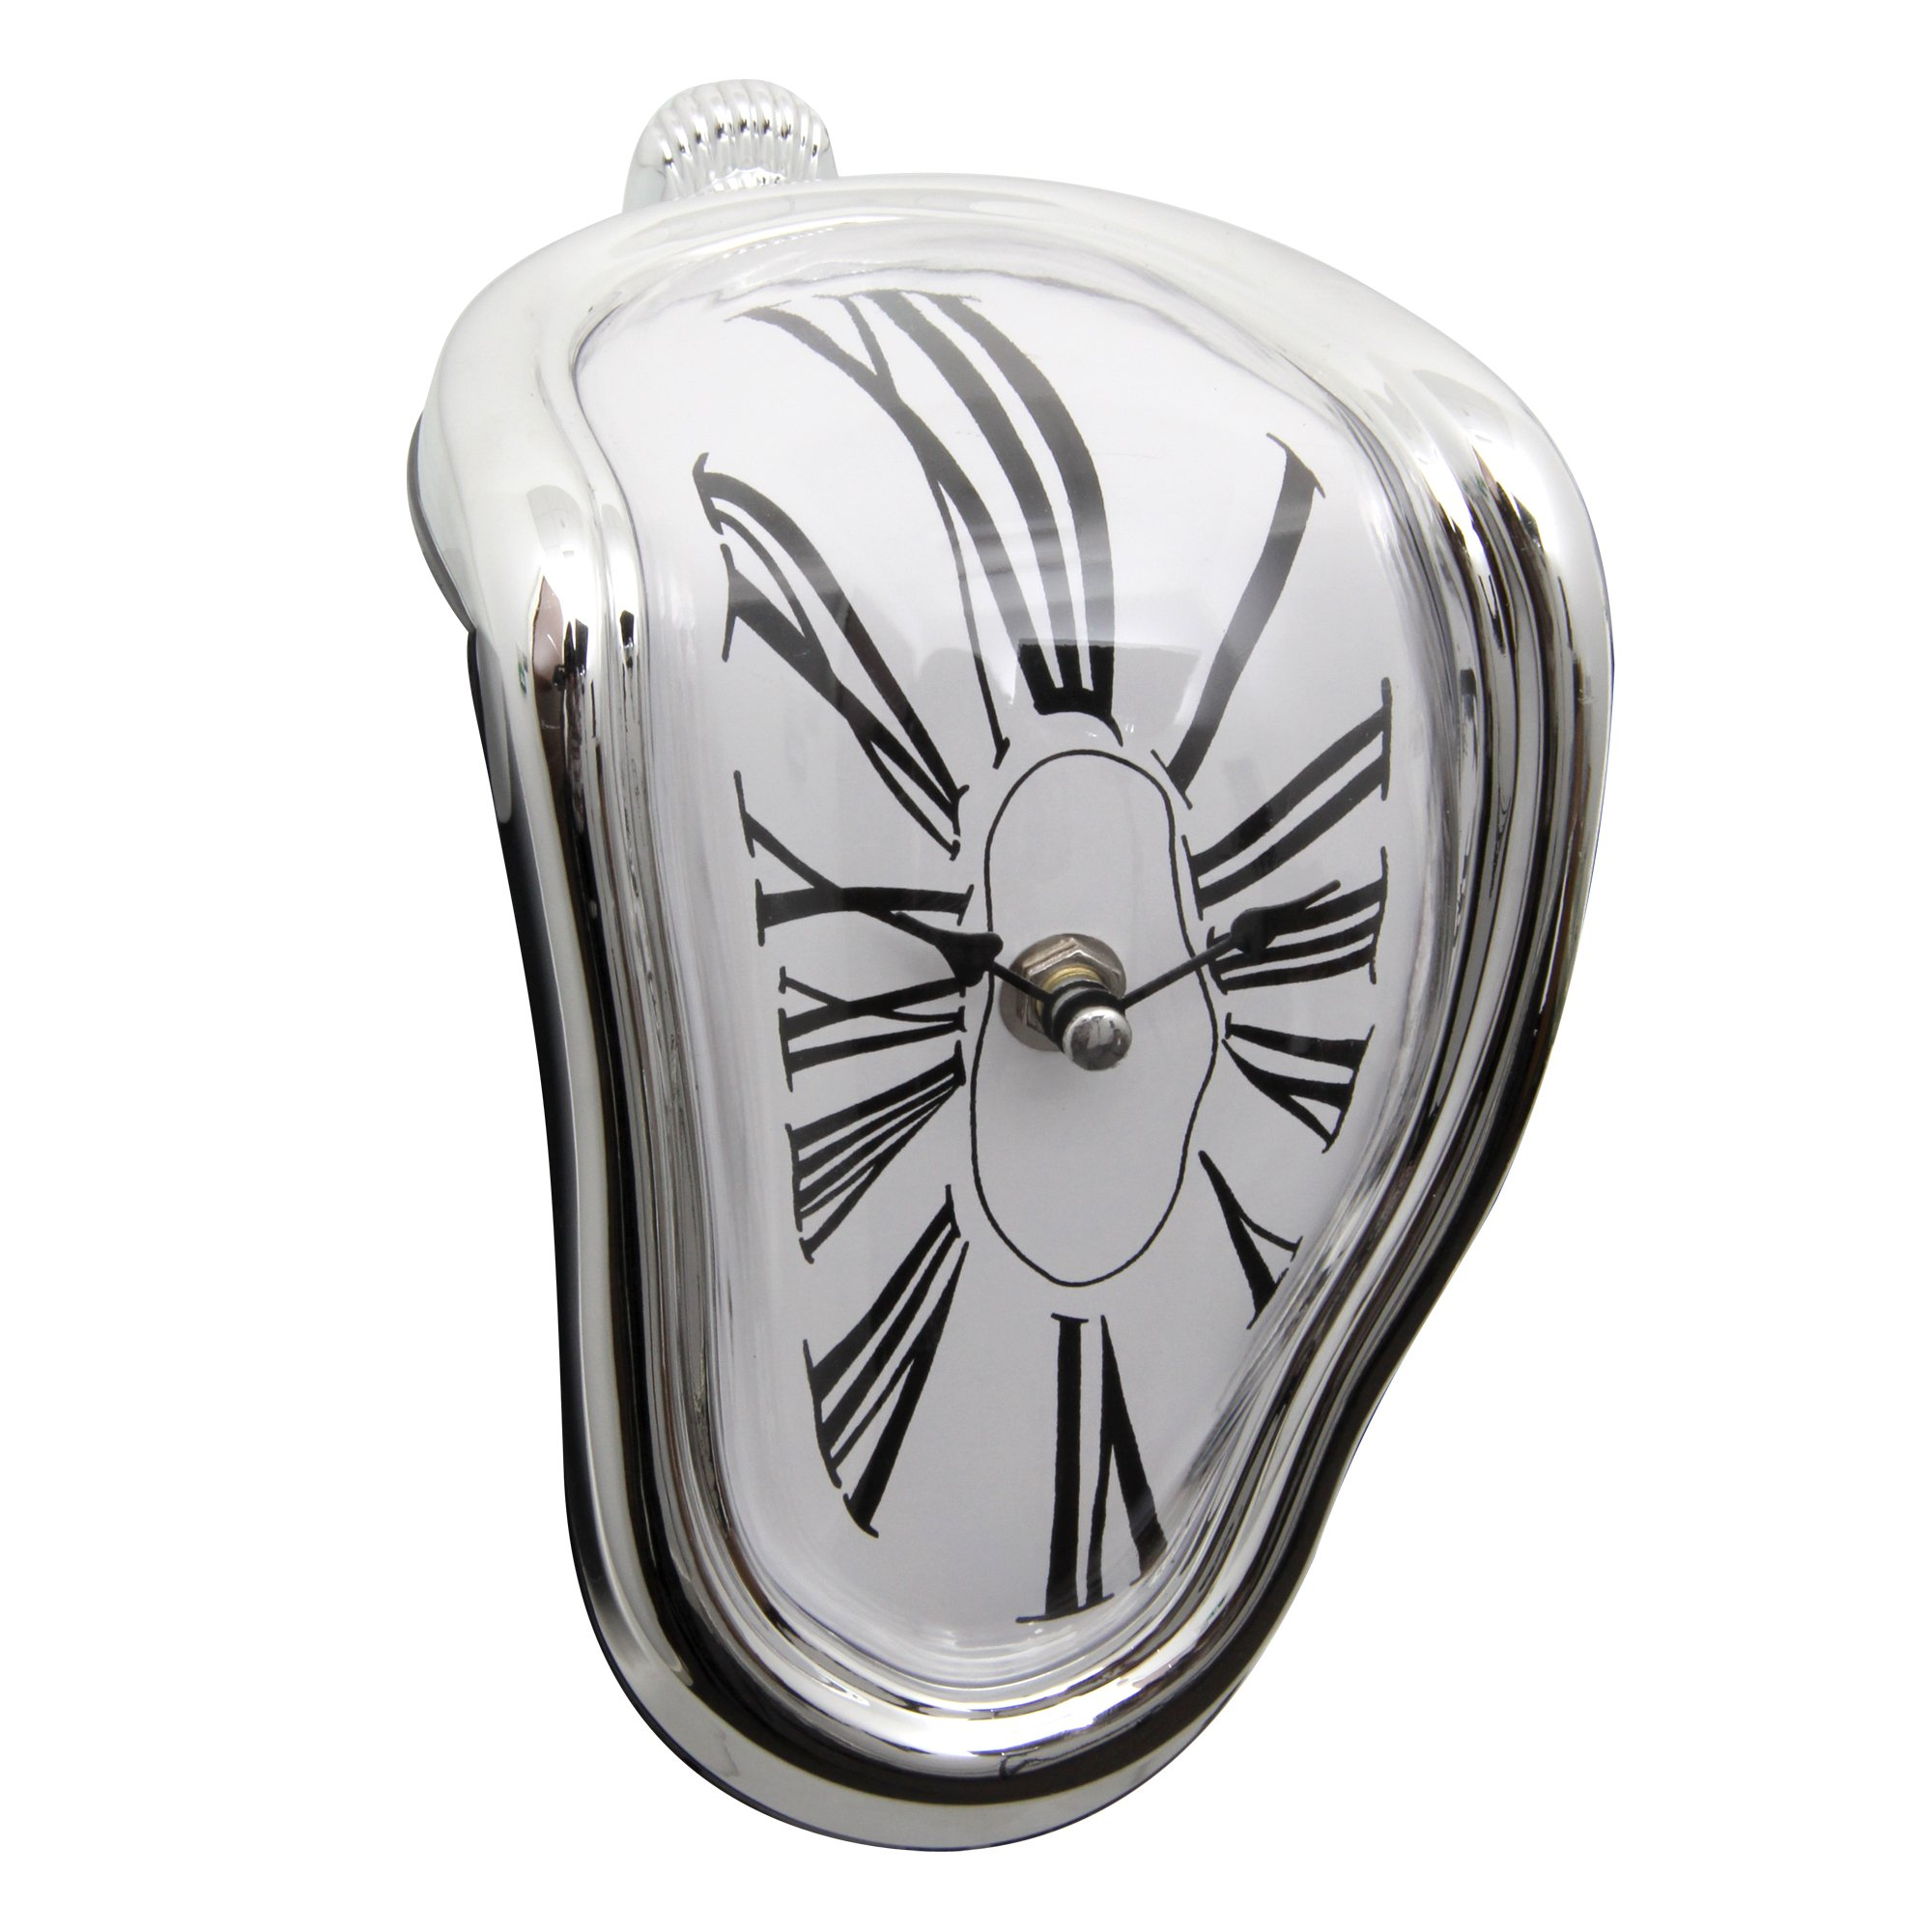 Melting Clock Home Art Design Large Hanging Wall Clocks Silent Wall